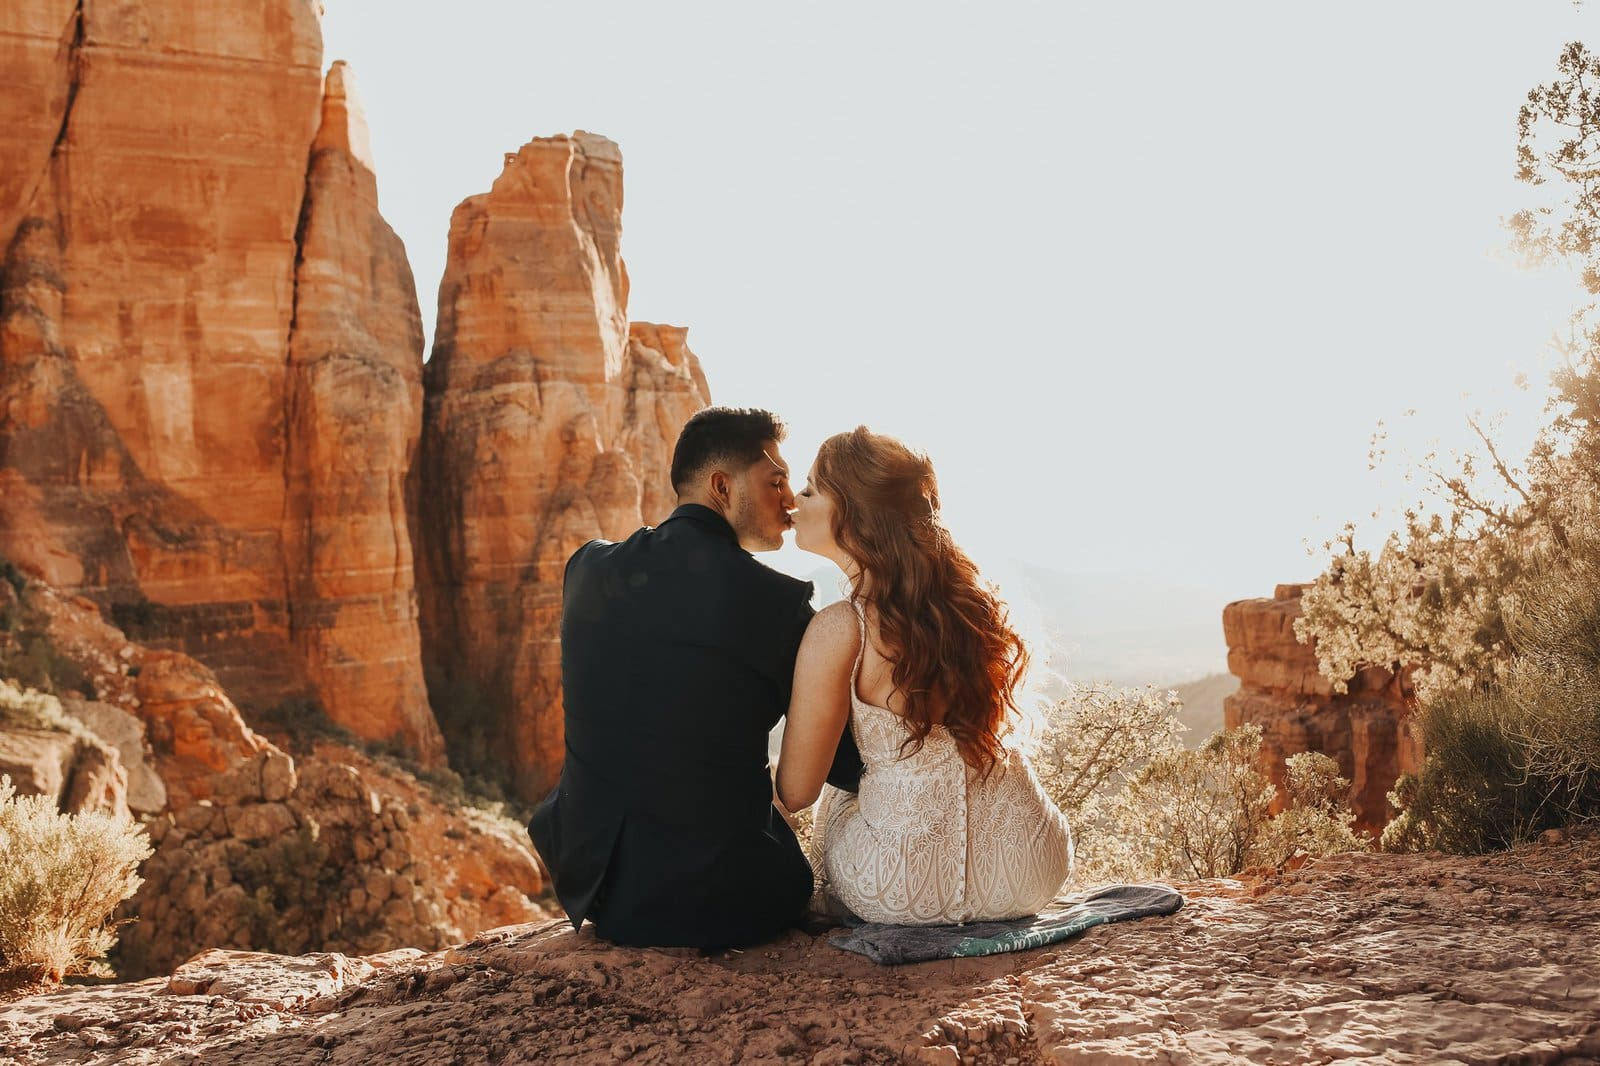 Couple shares a kiss at red rocks in Sedona.